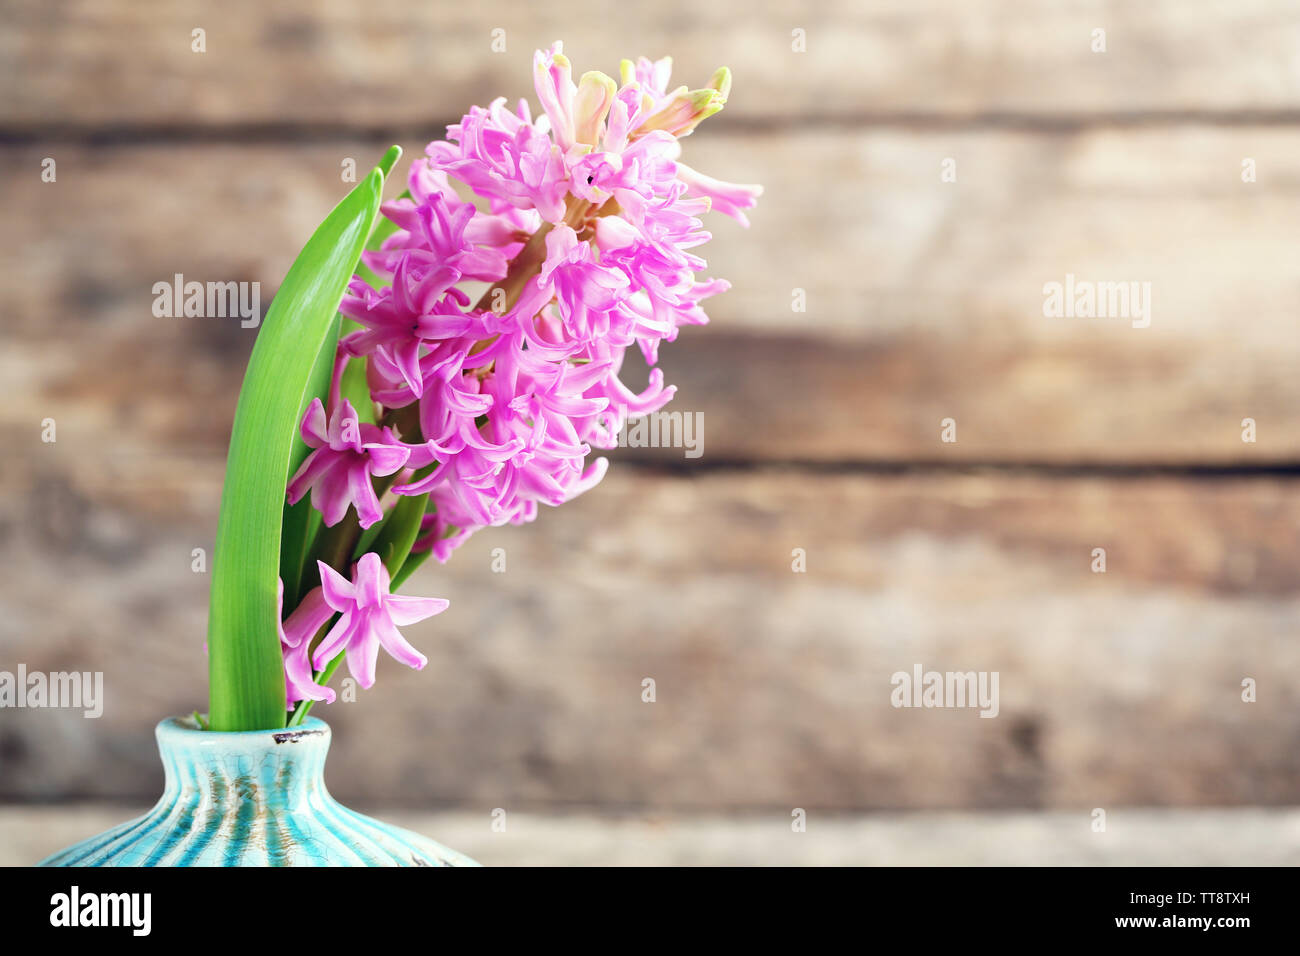 Beautiful hyacinth flower in vase on wooden background - Stock Image